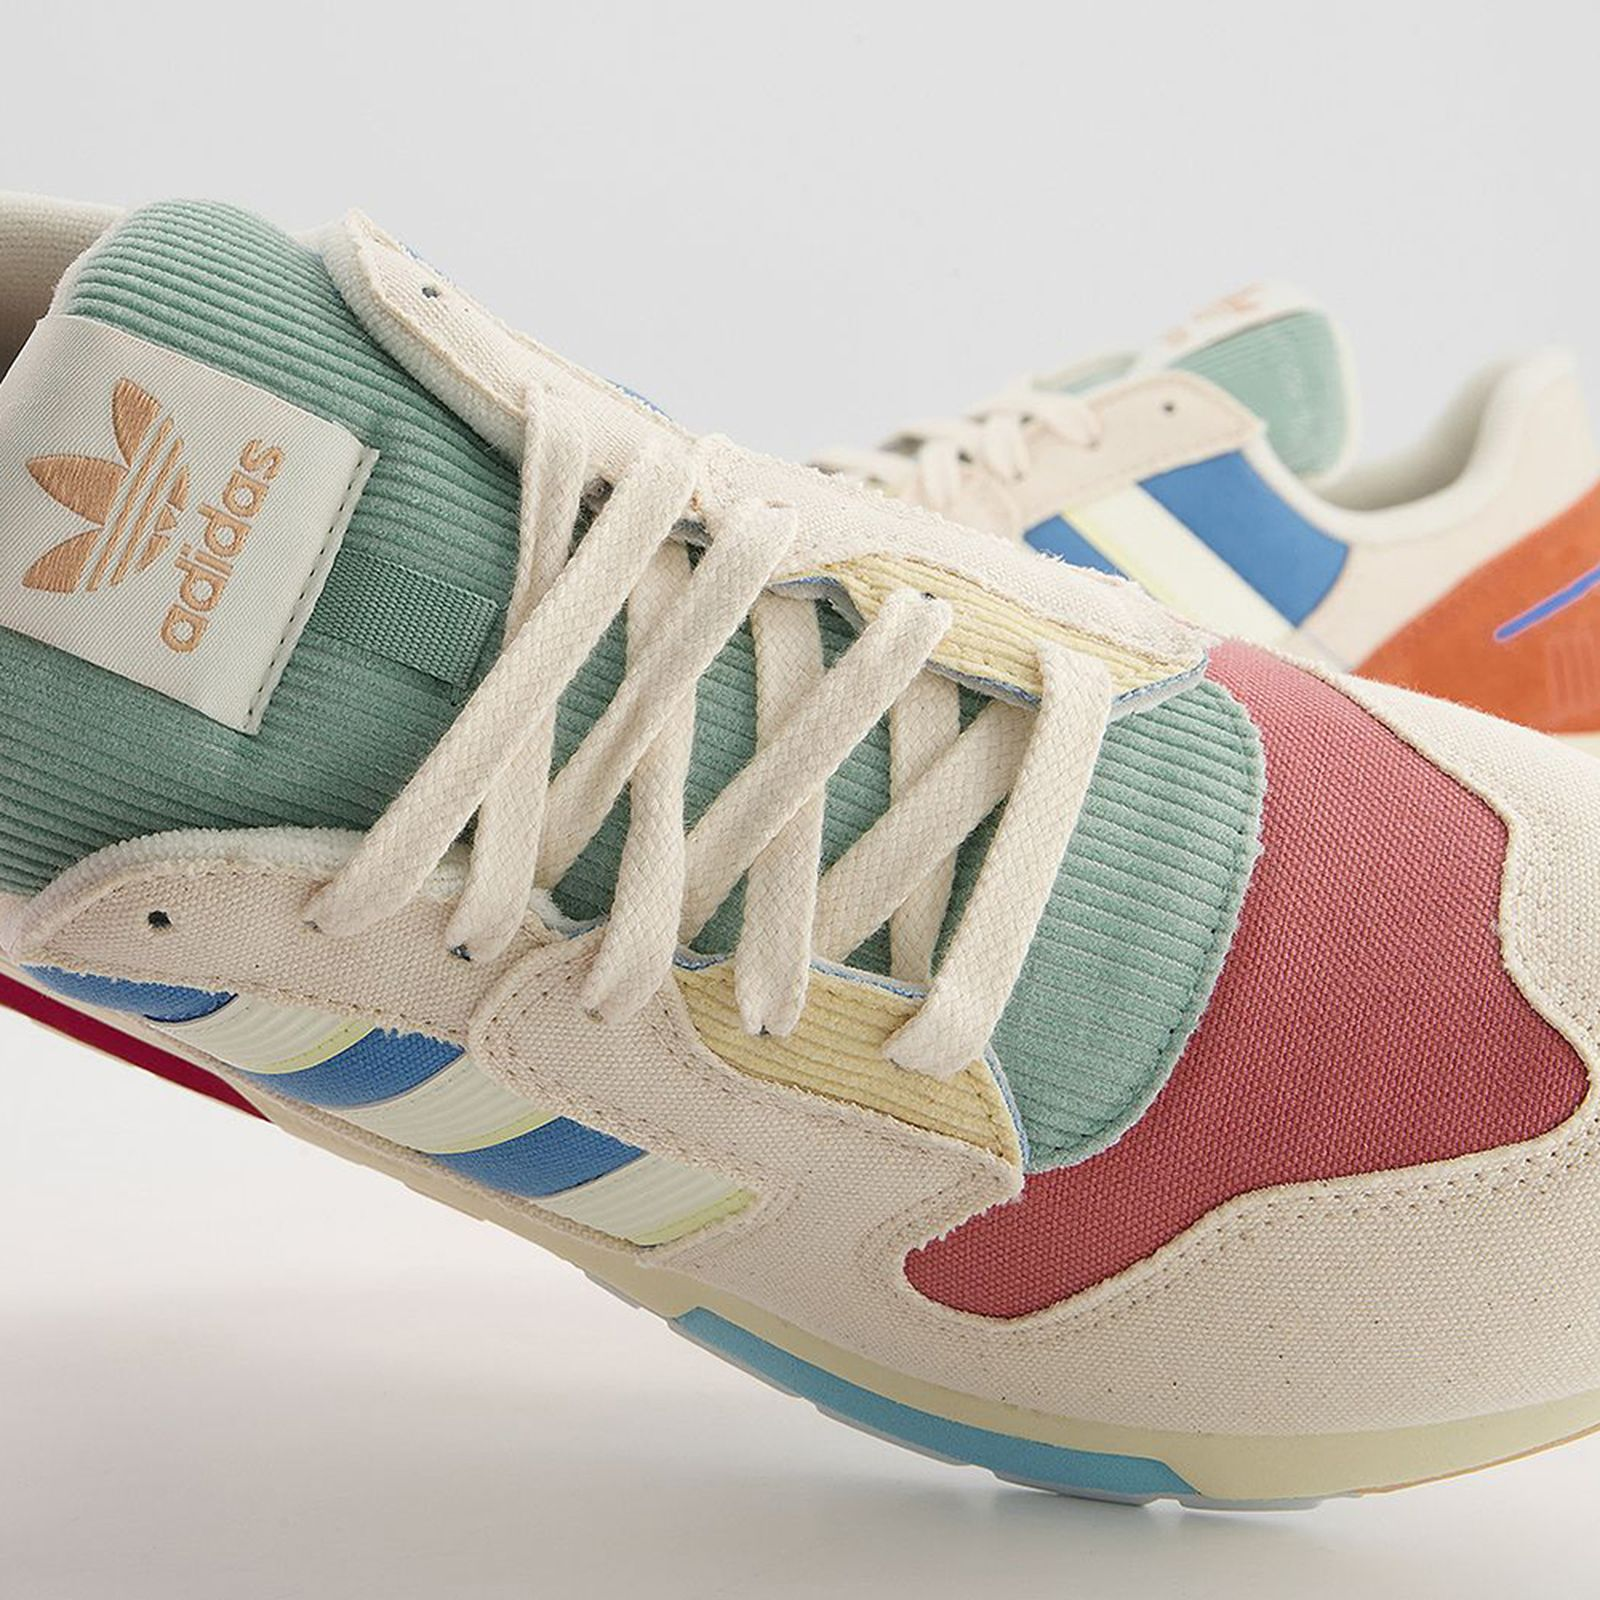 offspring-adidas-zx-420-la-release-date-price-04